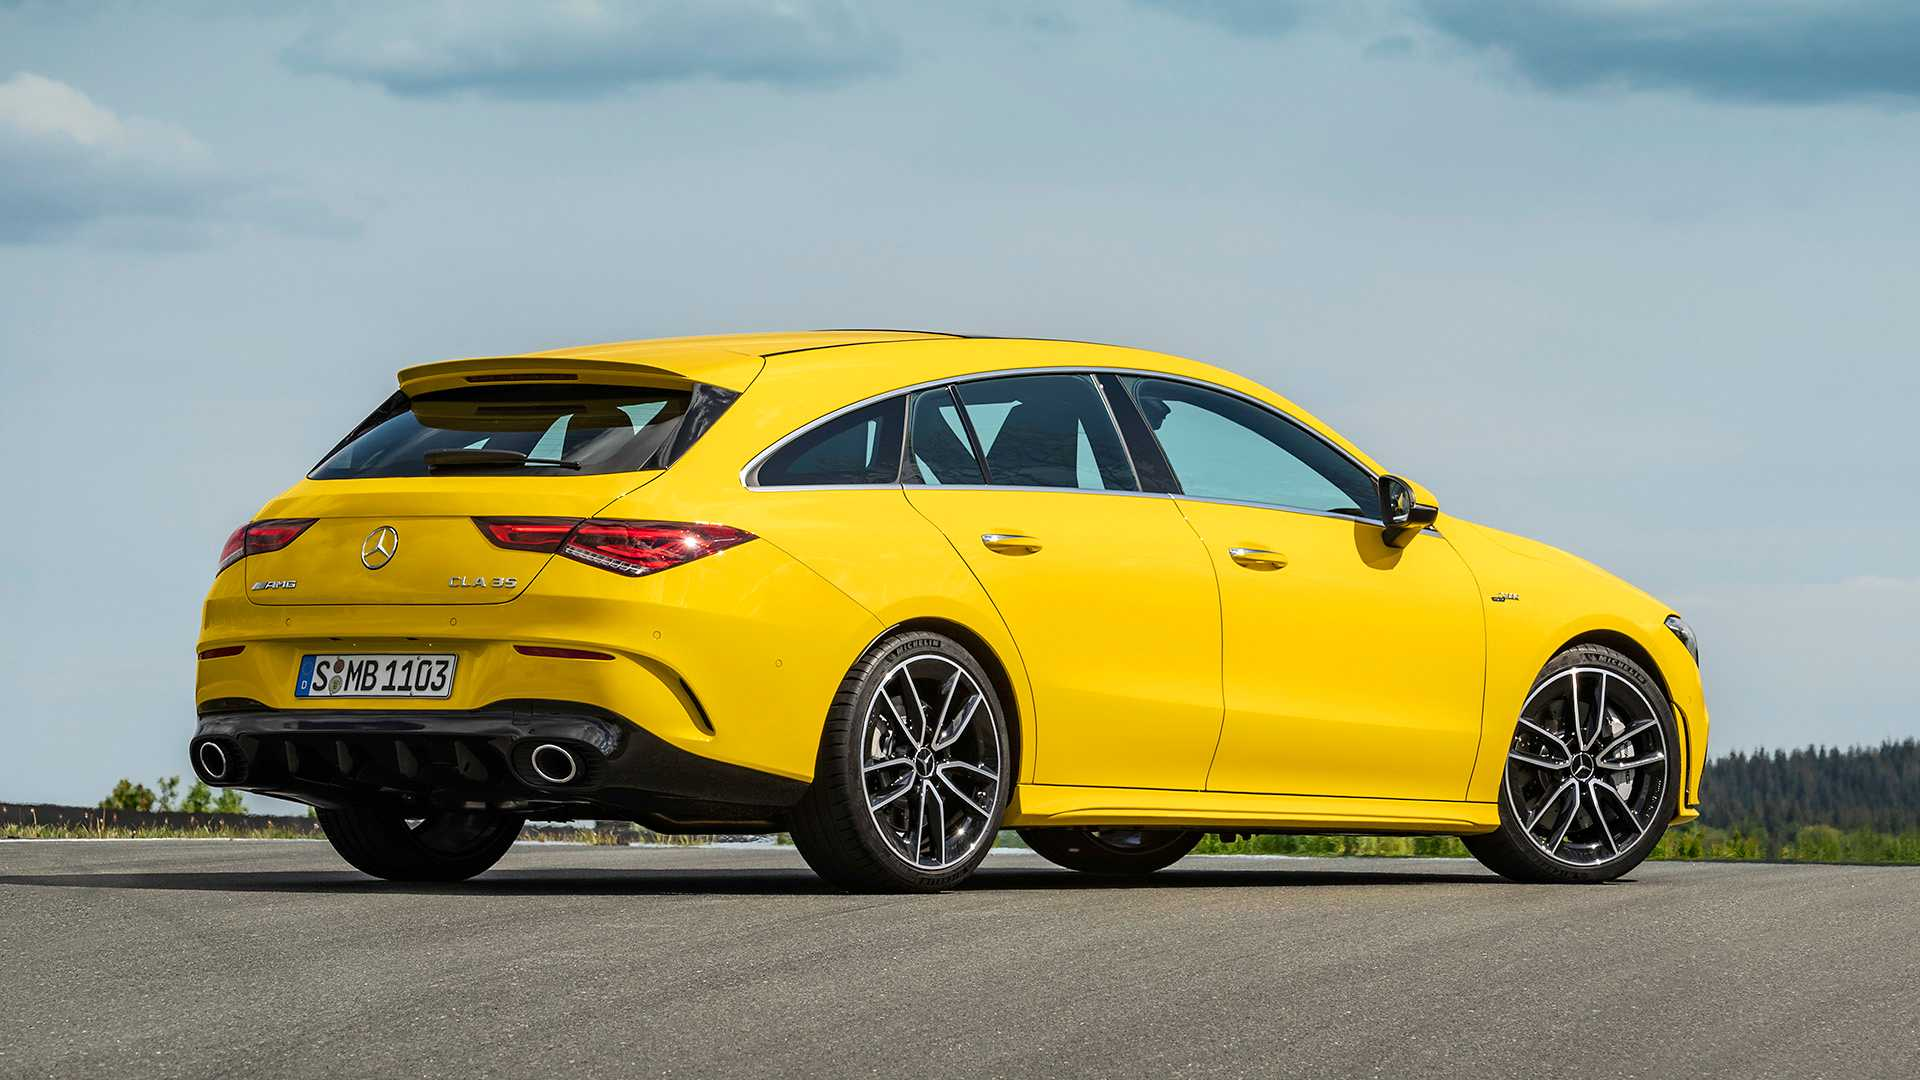 Mercedes Amg Cla 35 Shooting Brake Debuts With Svelte Styling